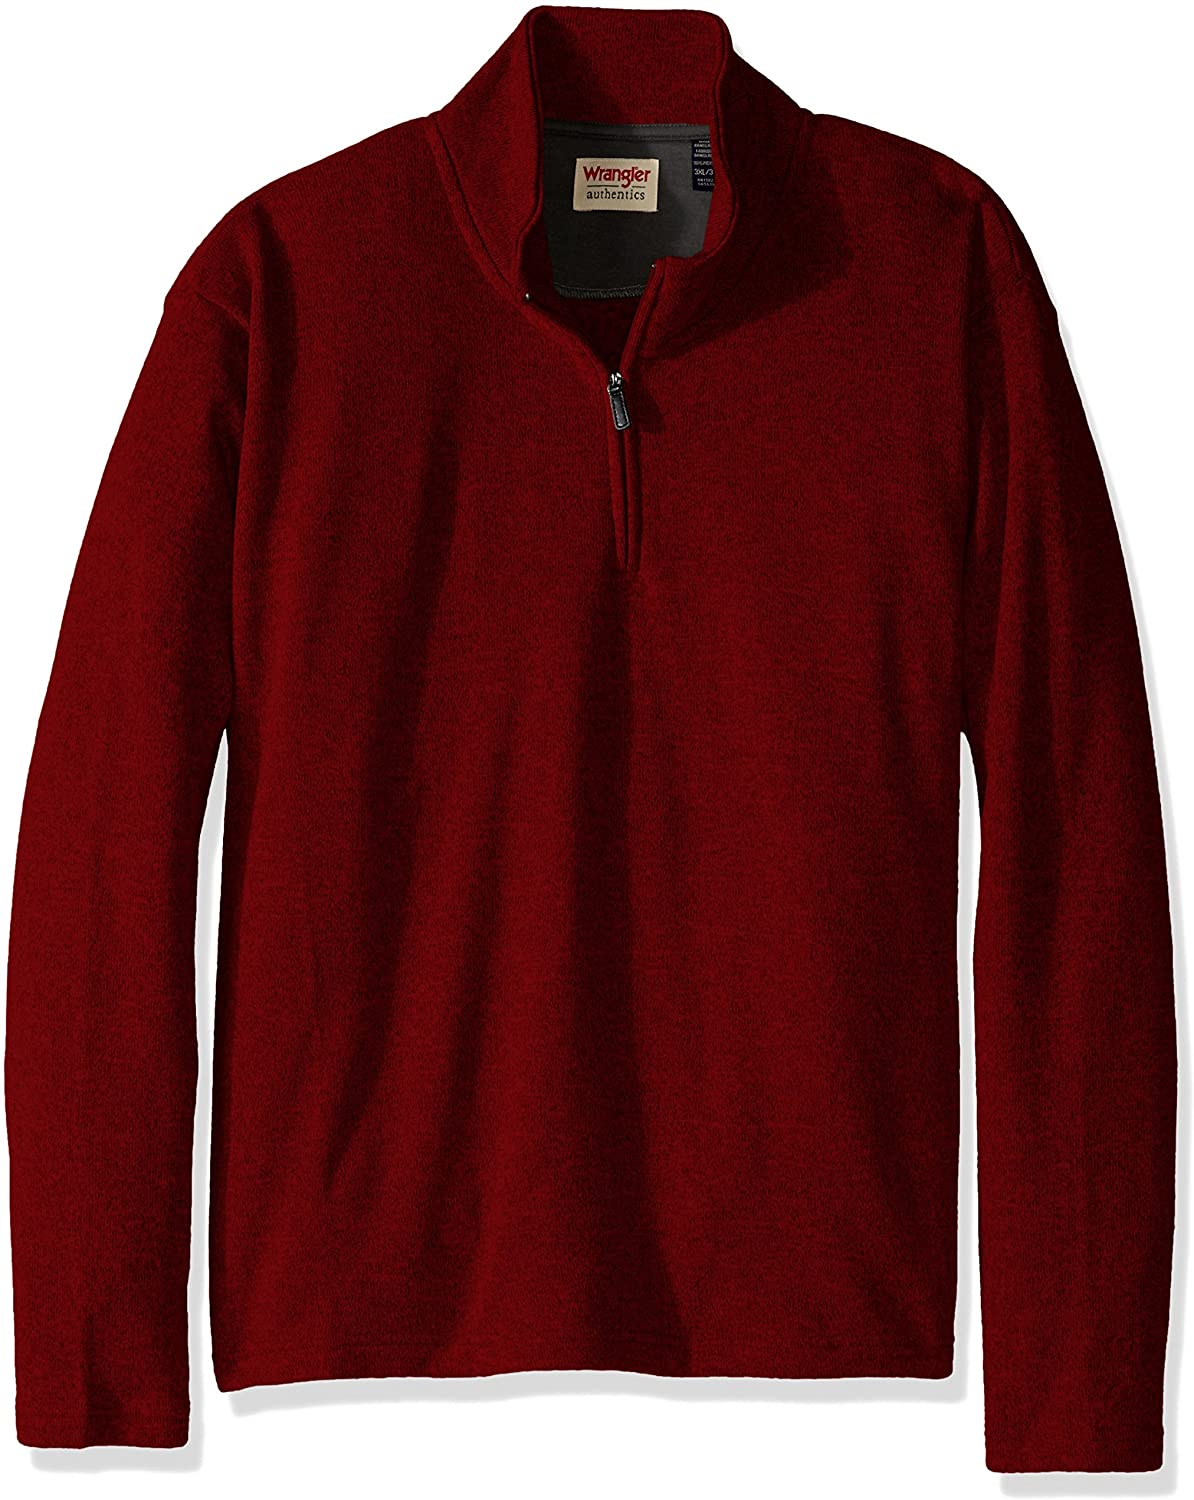 Wrangler Jersey Fleece Quarter-Zip Rio Red Hombre